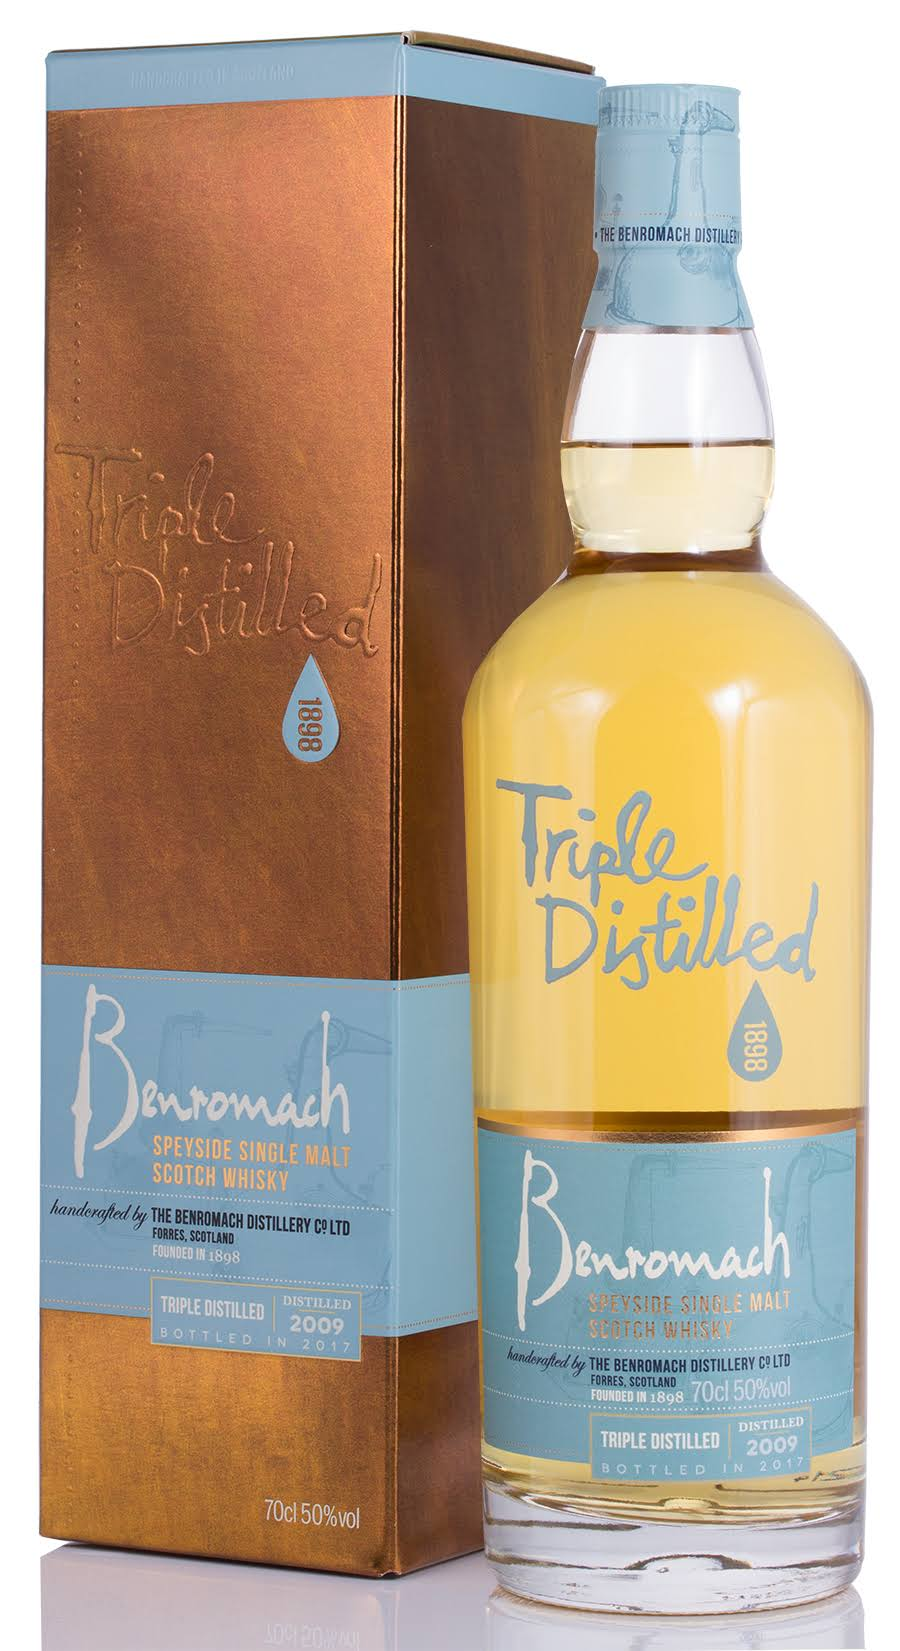 Benromach Triple Distilled Speyside Single Malt Whisky - 700ml